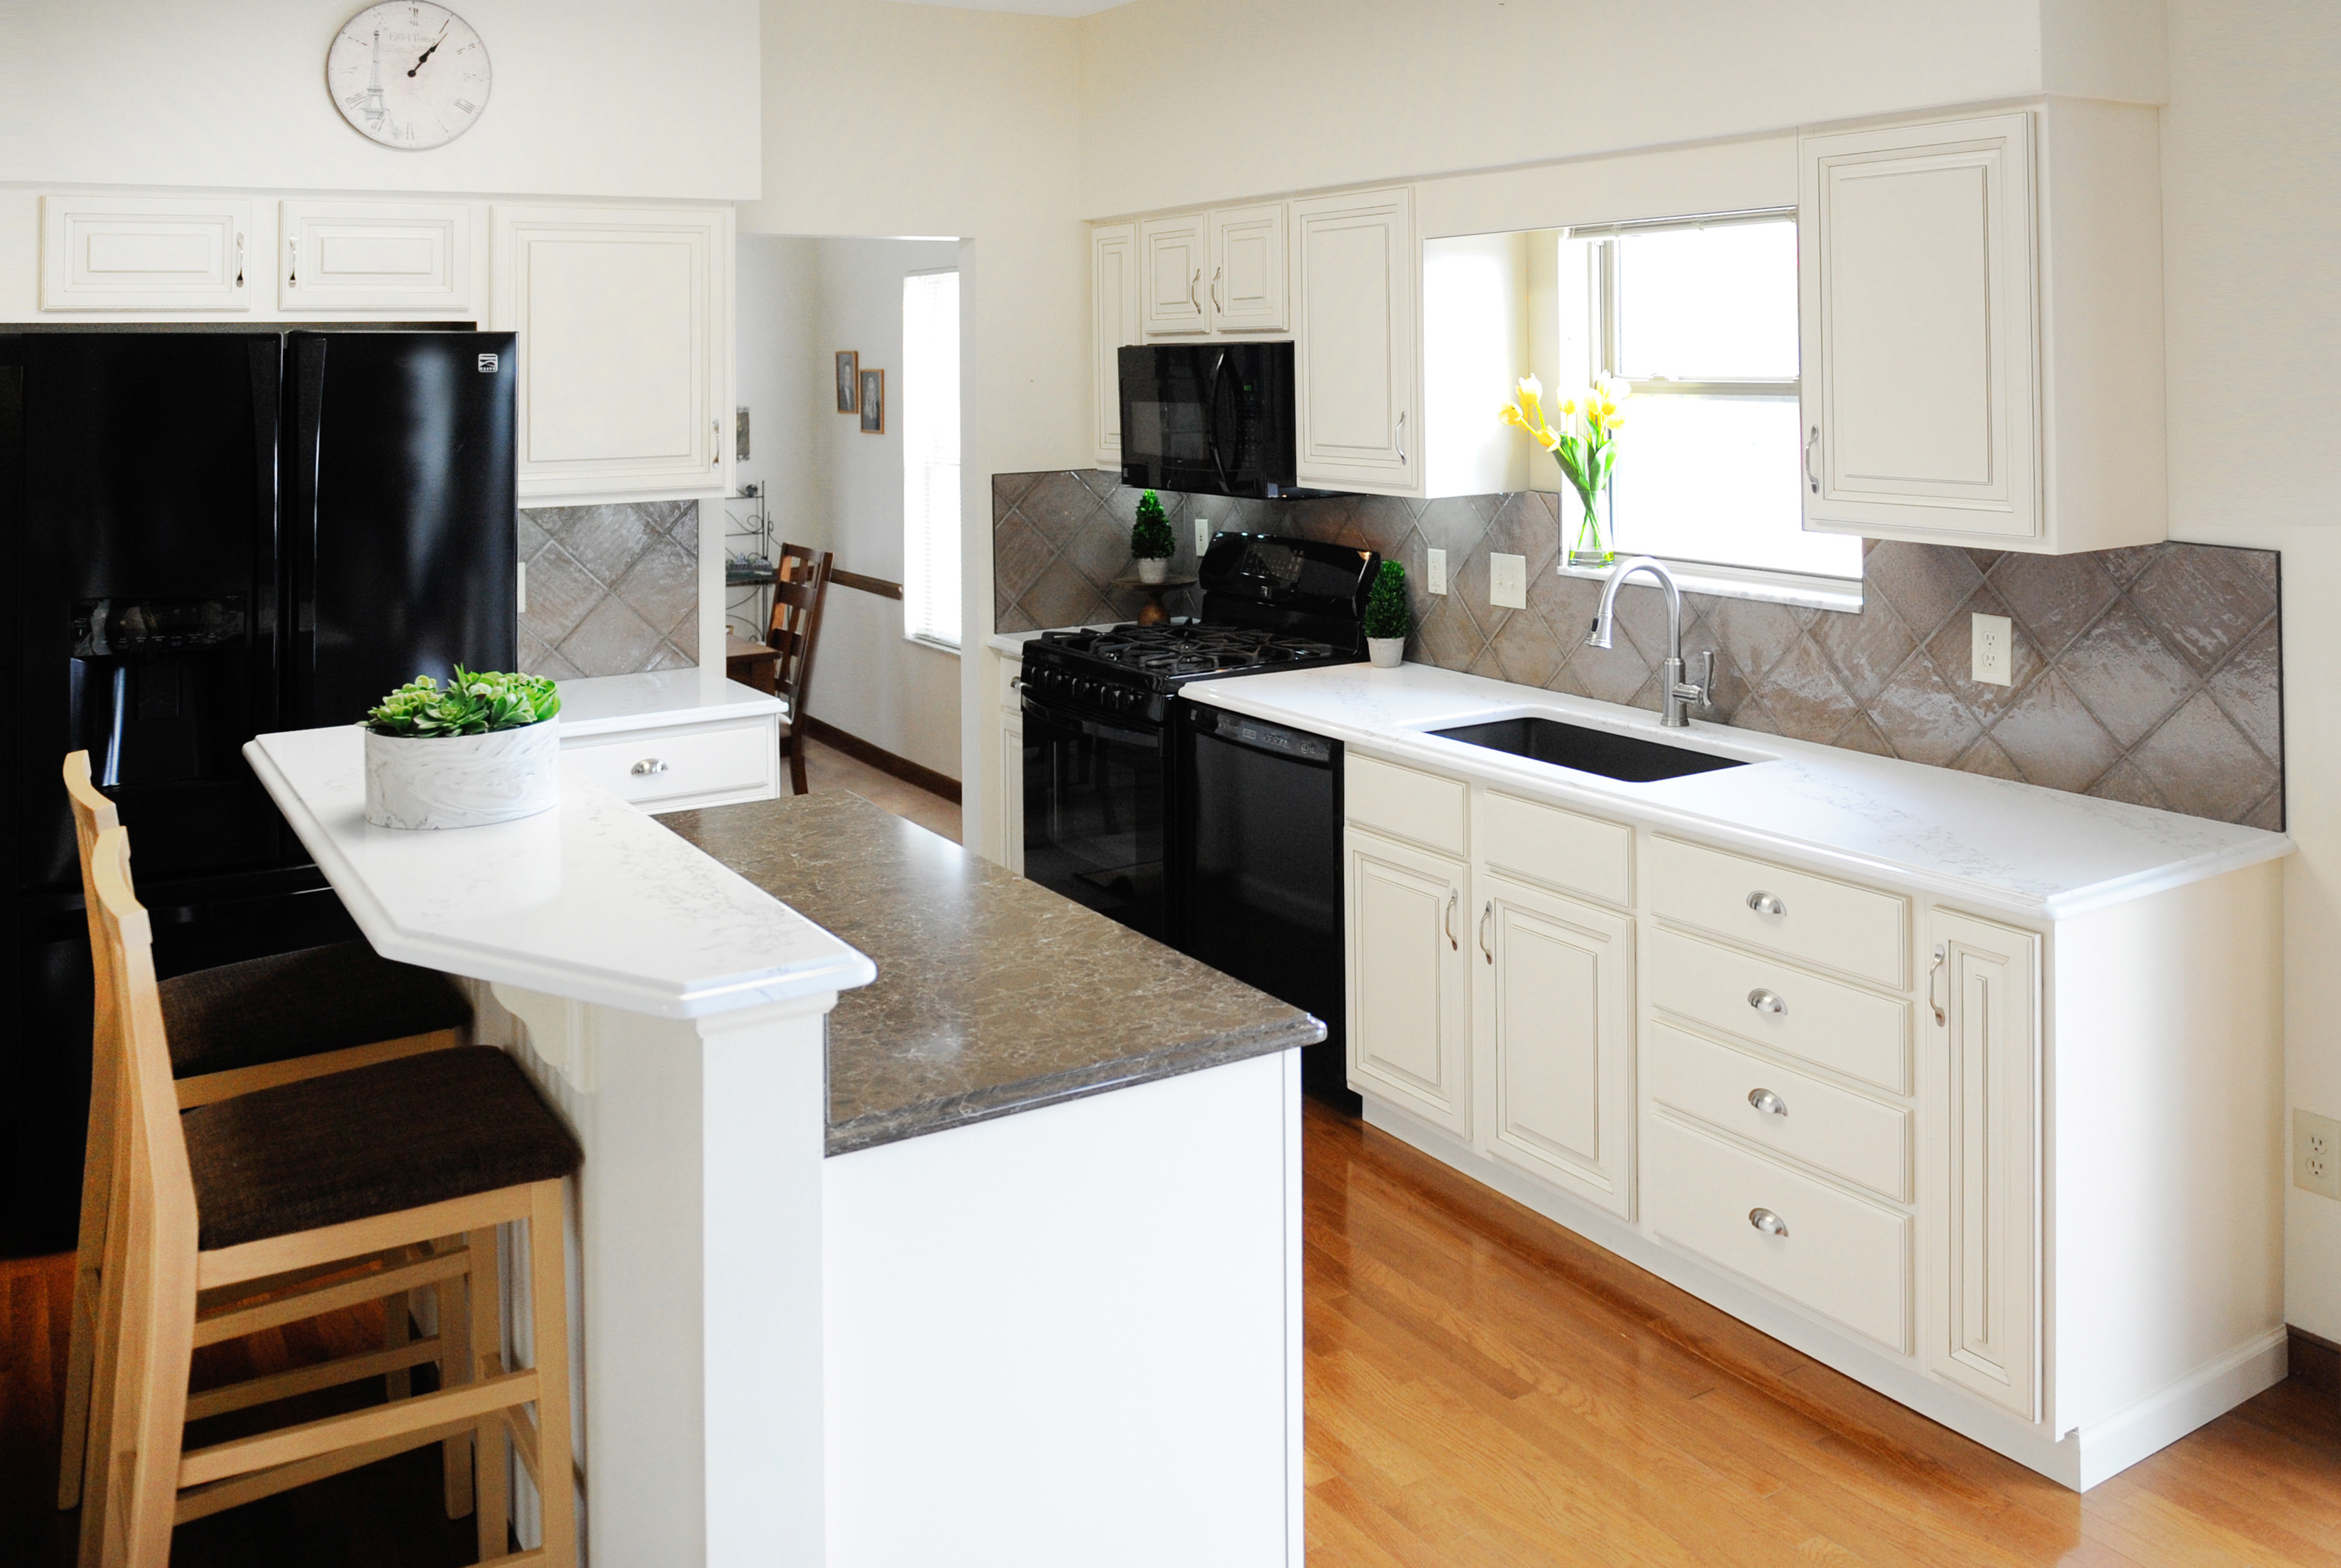 Reface or Replace? | The Creative Kitchen Co.